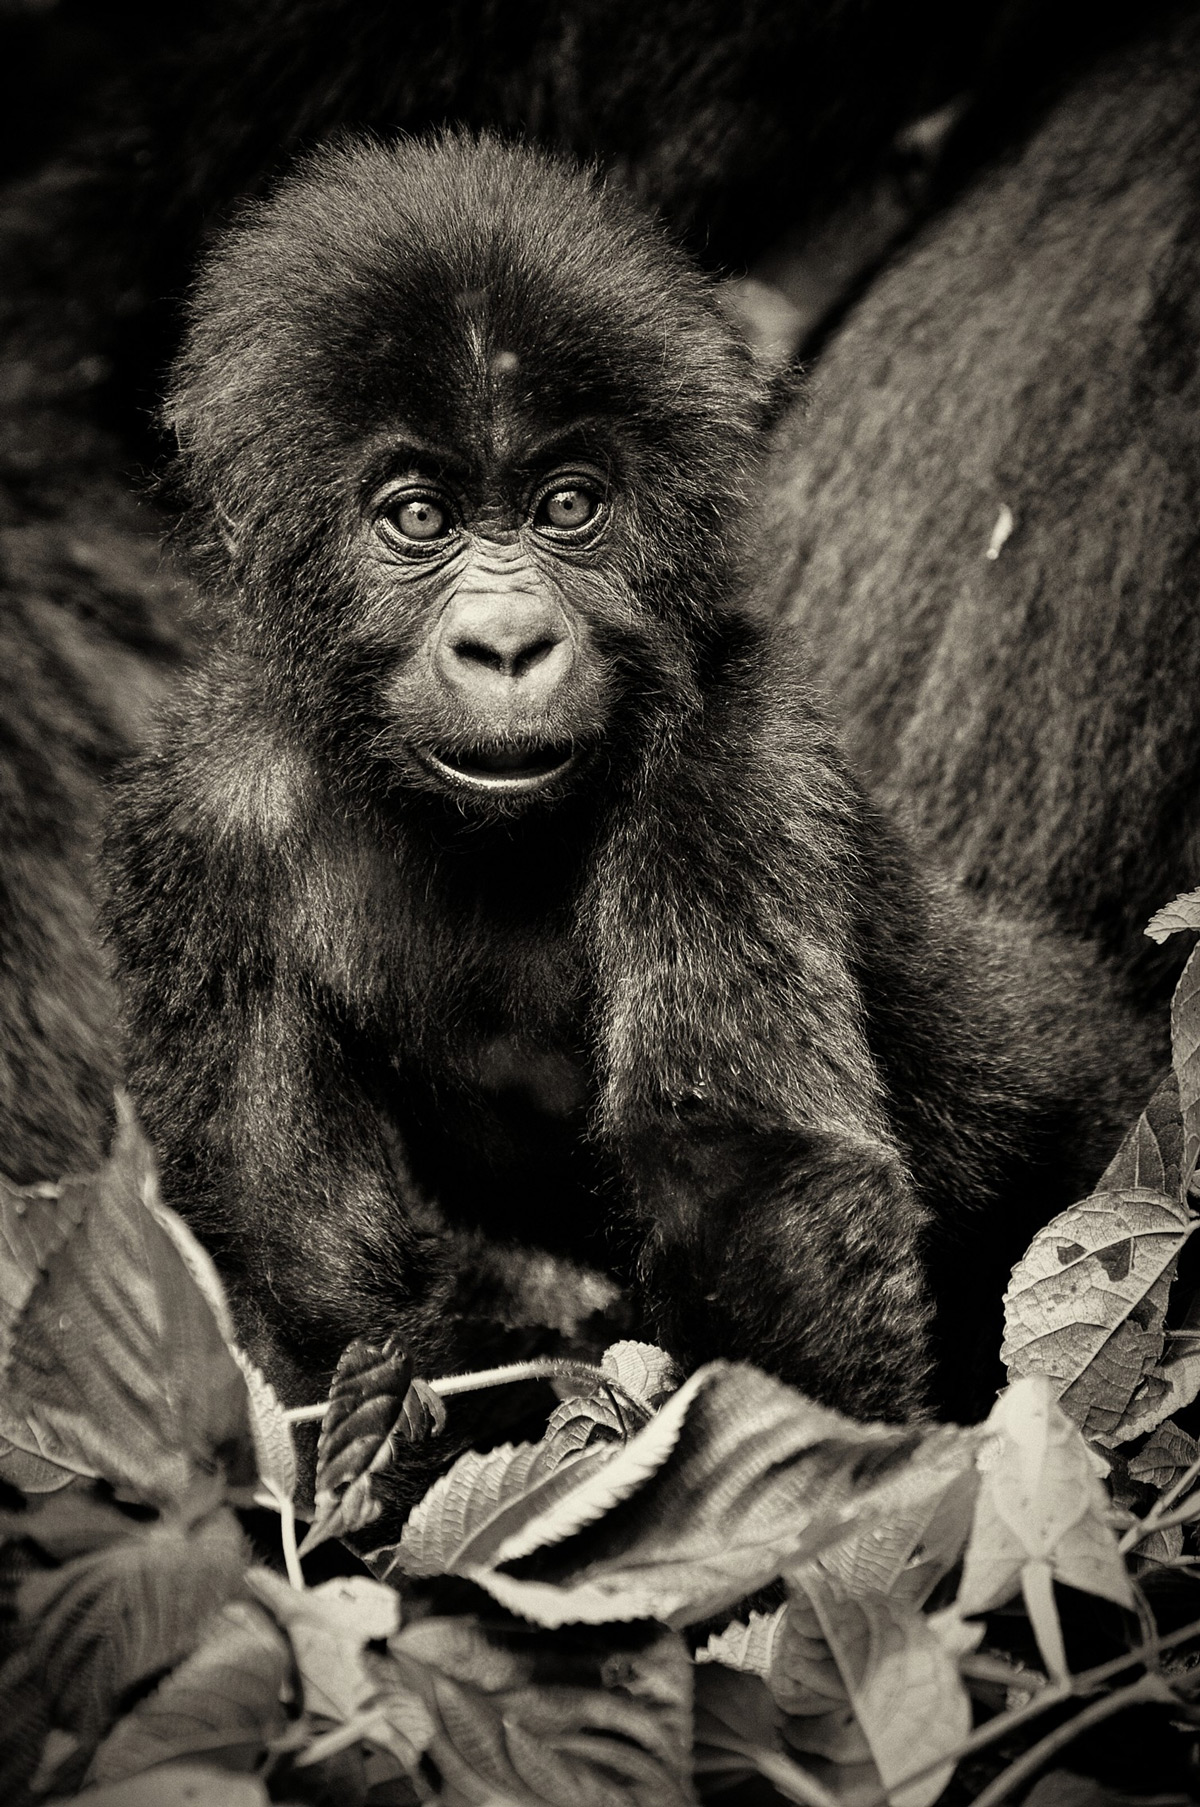 An eastern lowland gorilla (Grauer's gorilla) infant in Kahuzi-Biega National Park, Democratic Republic of the Congo © Sushil Chauhan